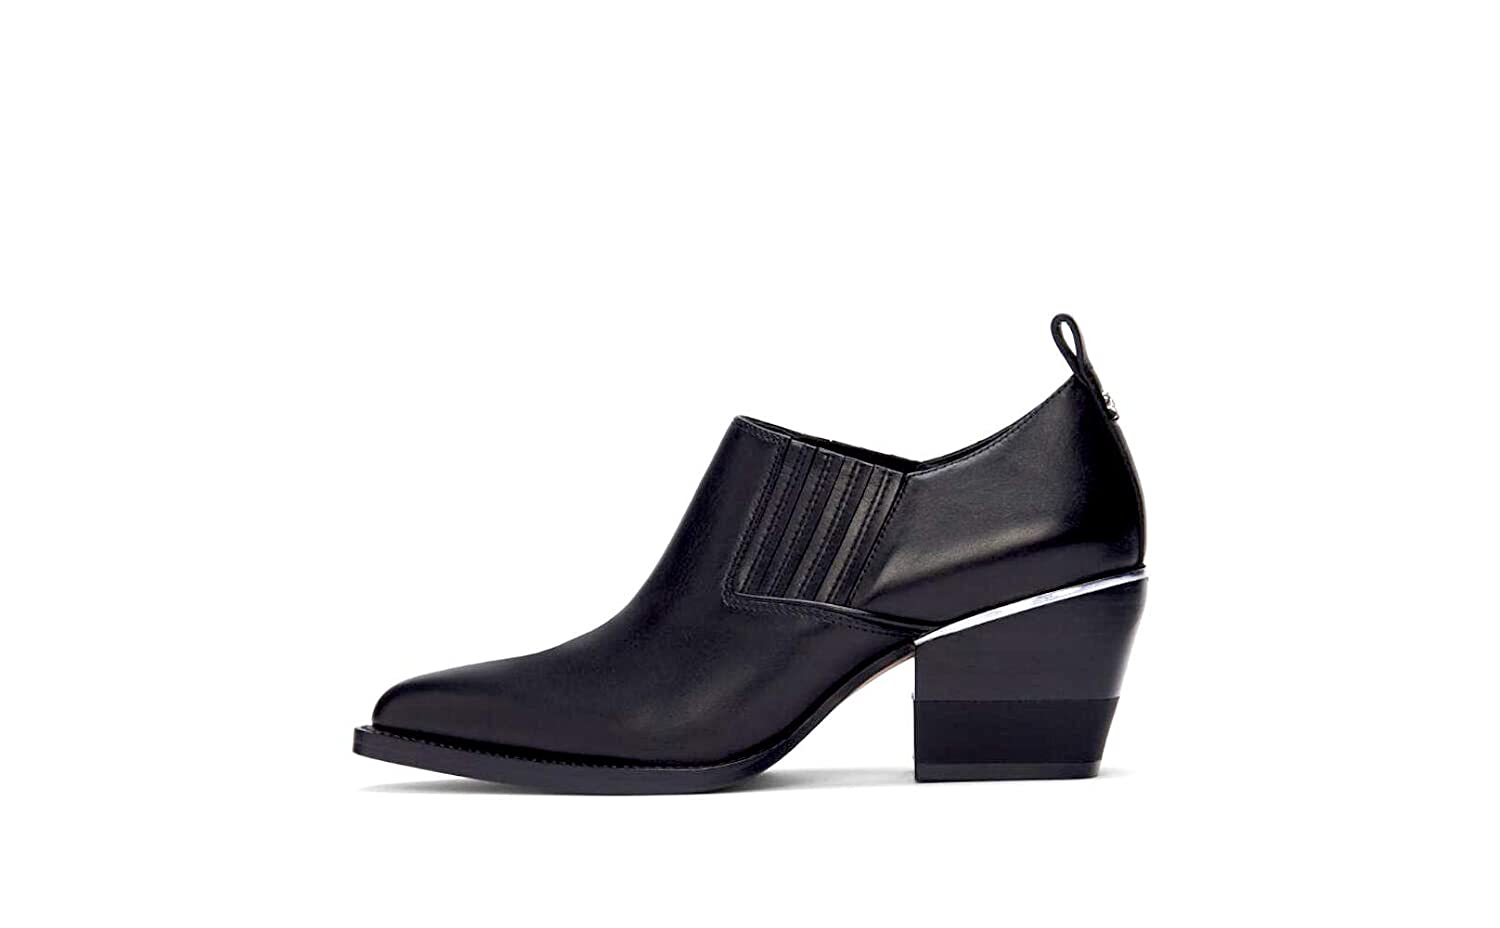 DKNY Womens Roxy Shootie Leather Closed Toe Ankle Fashion Boots